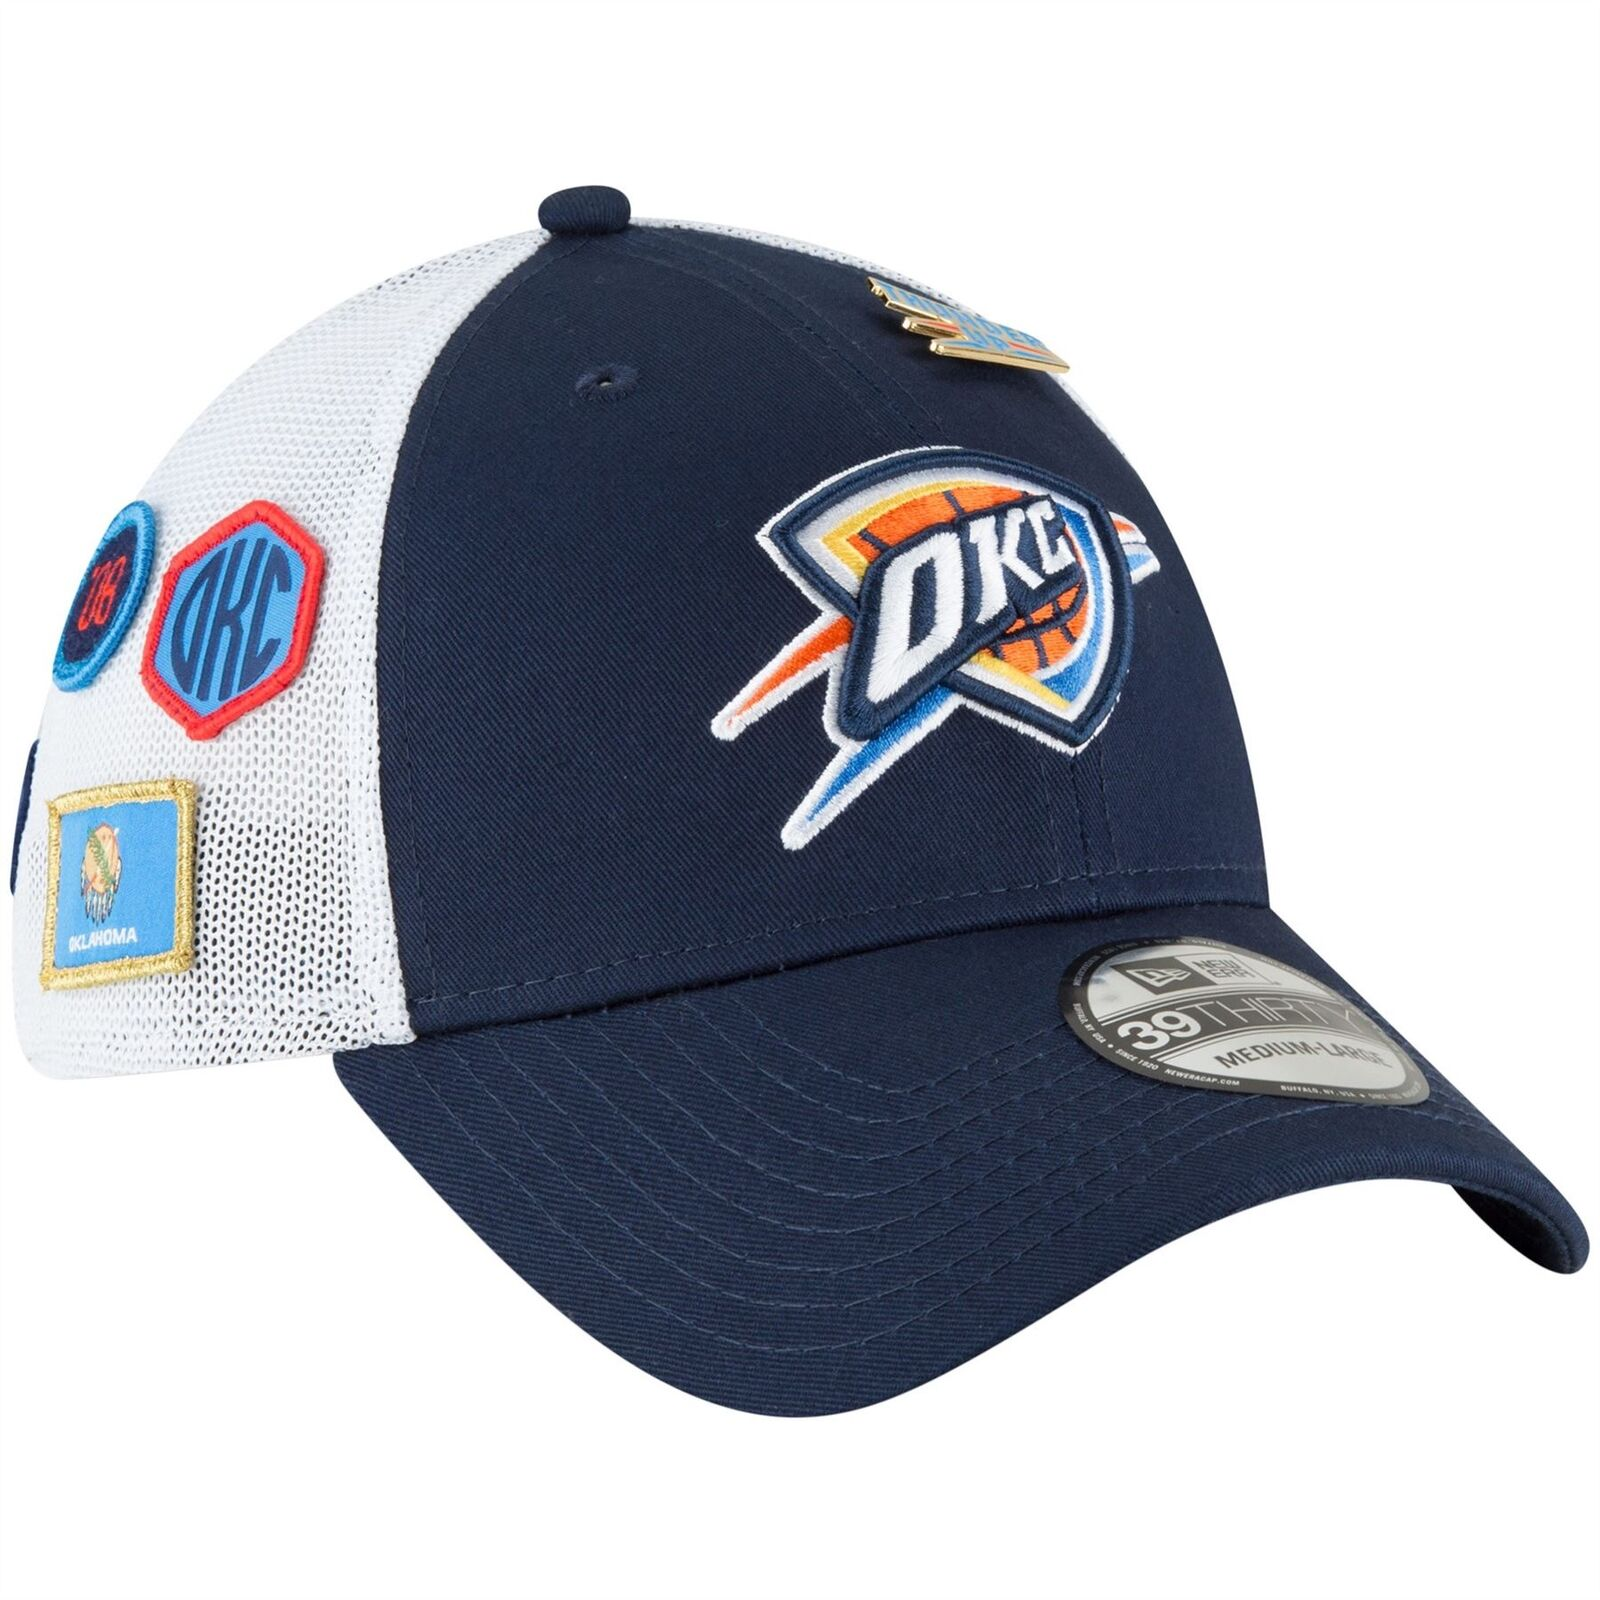 Oklahoma Fitted City Thunder 2018 Draft Hat New Era NBA Fitted Oklahoma Men's 39THIRTY Hat Navy 26357a